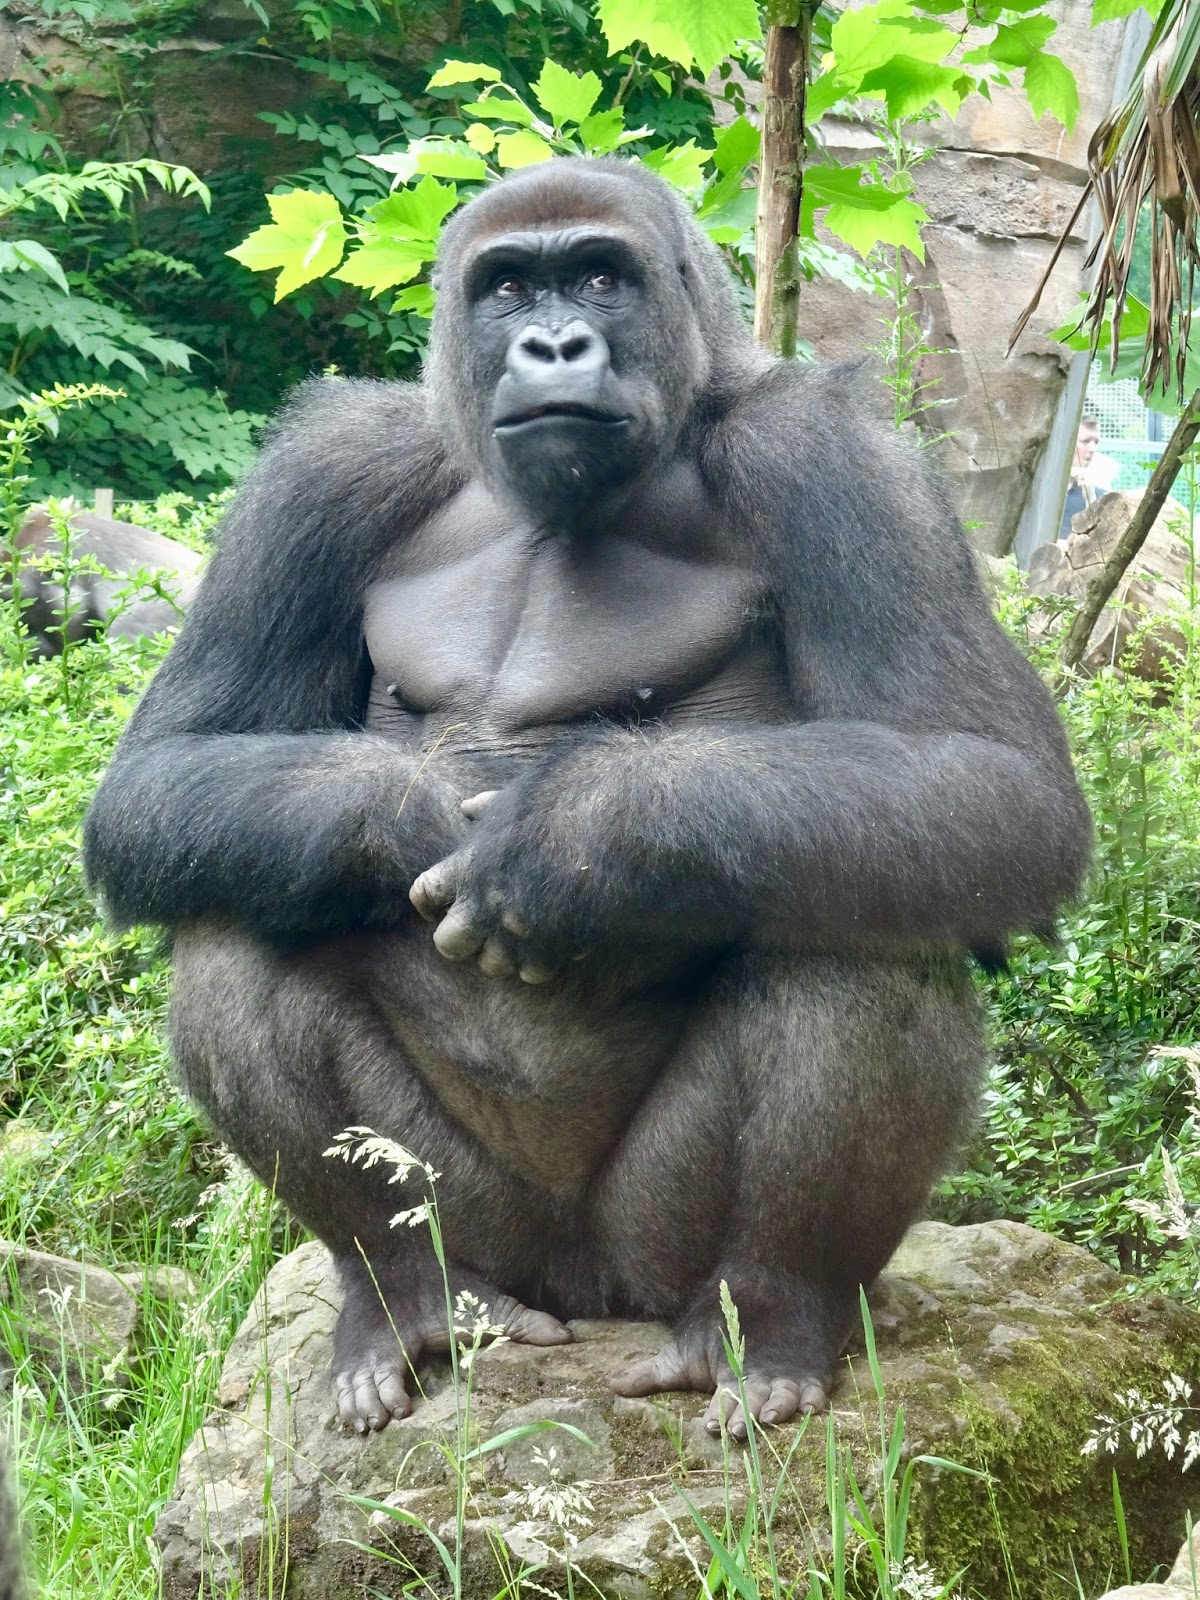 100+ Great Apes HD Pictures - World Most Intelligent 1st Animals